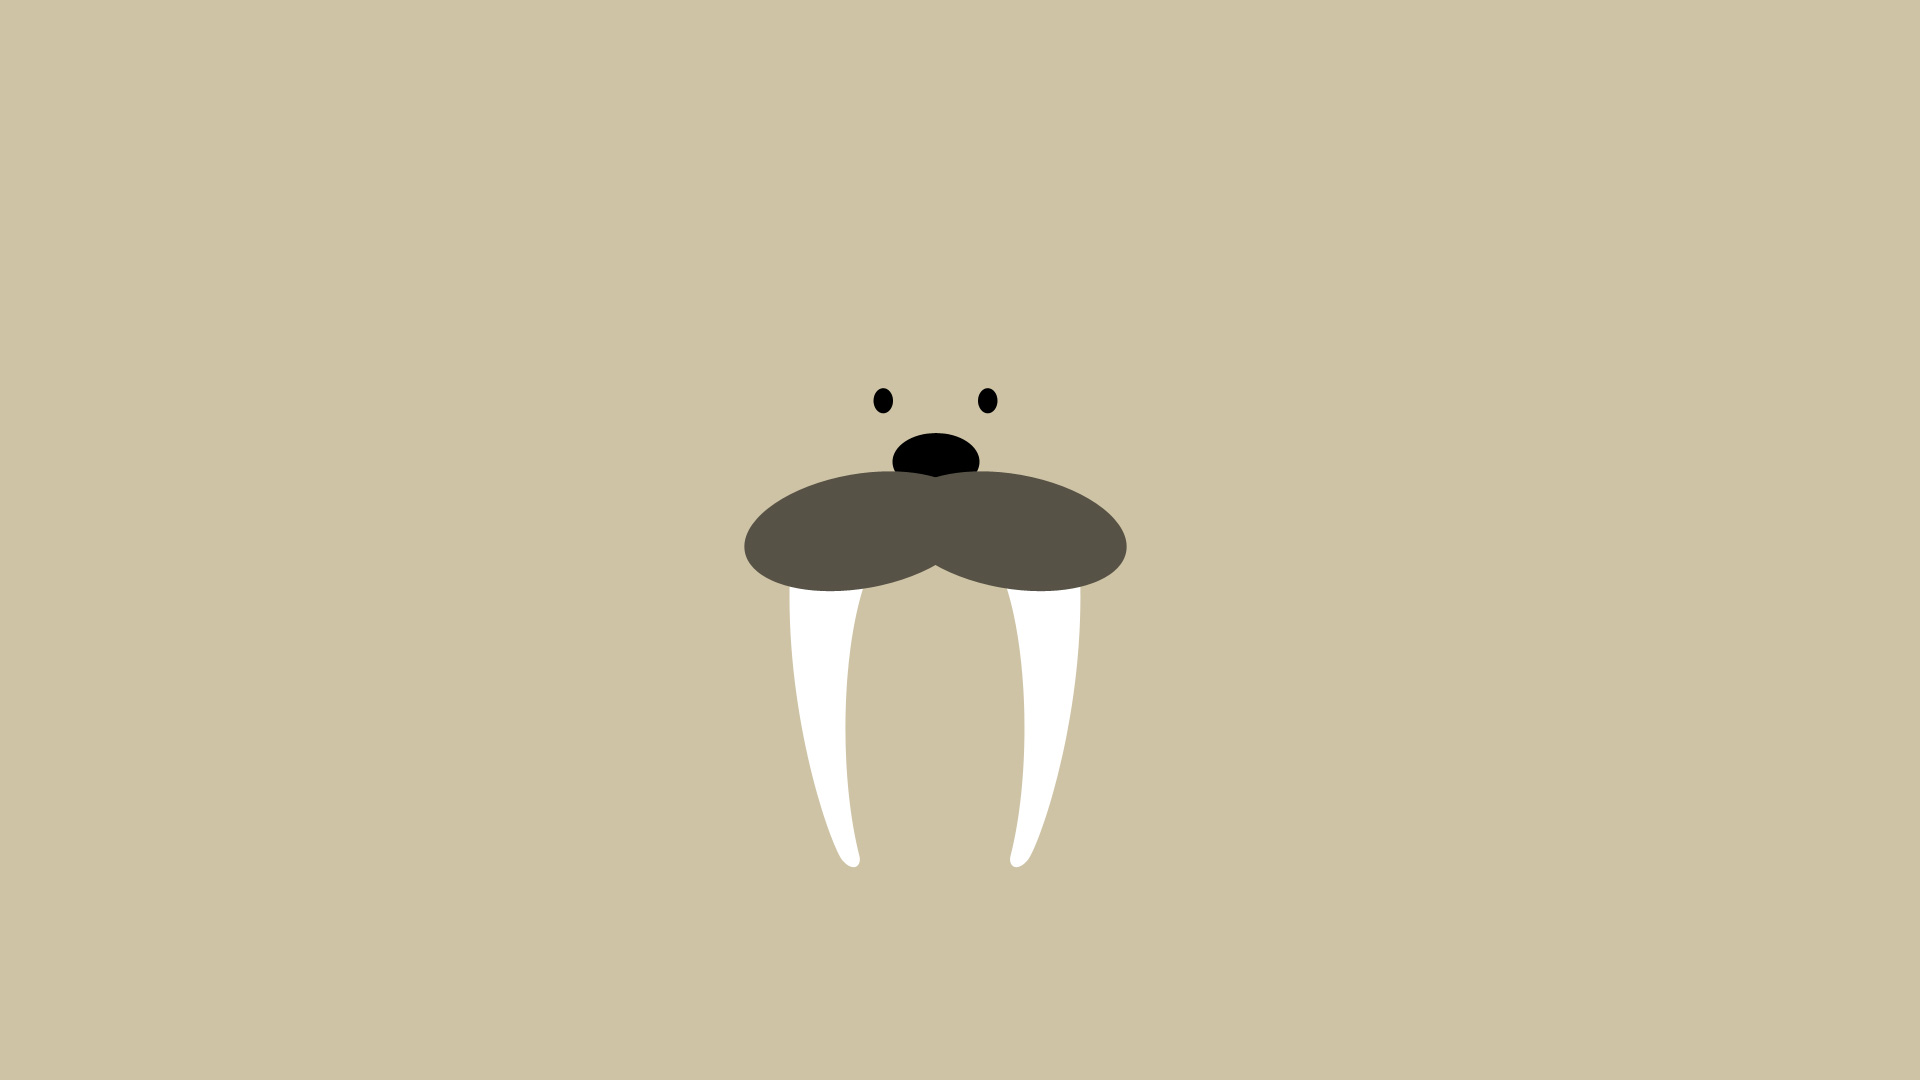 walrus wallpaper 2 by derclaudius on deviantart